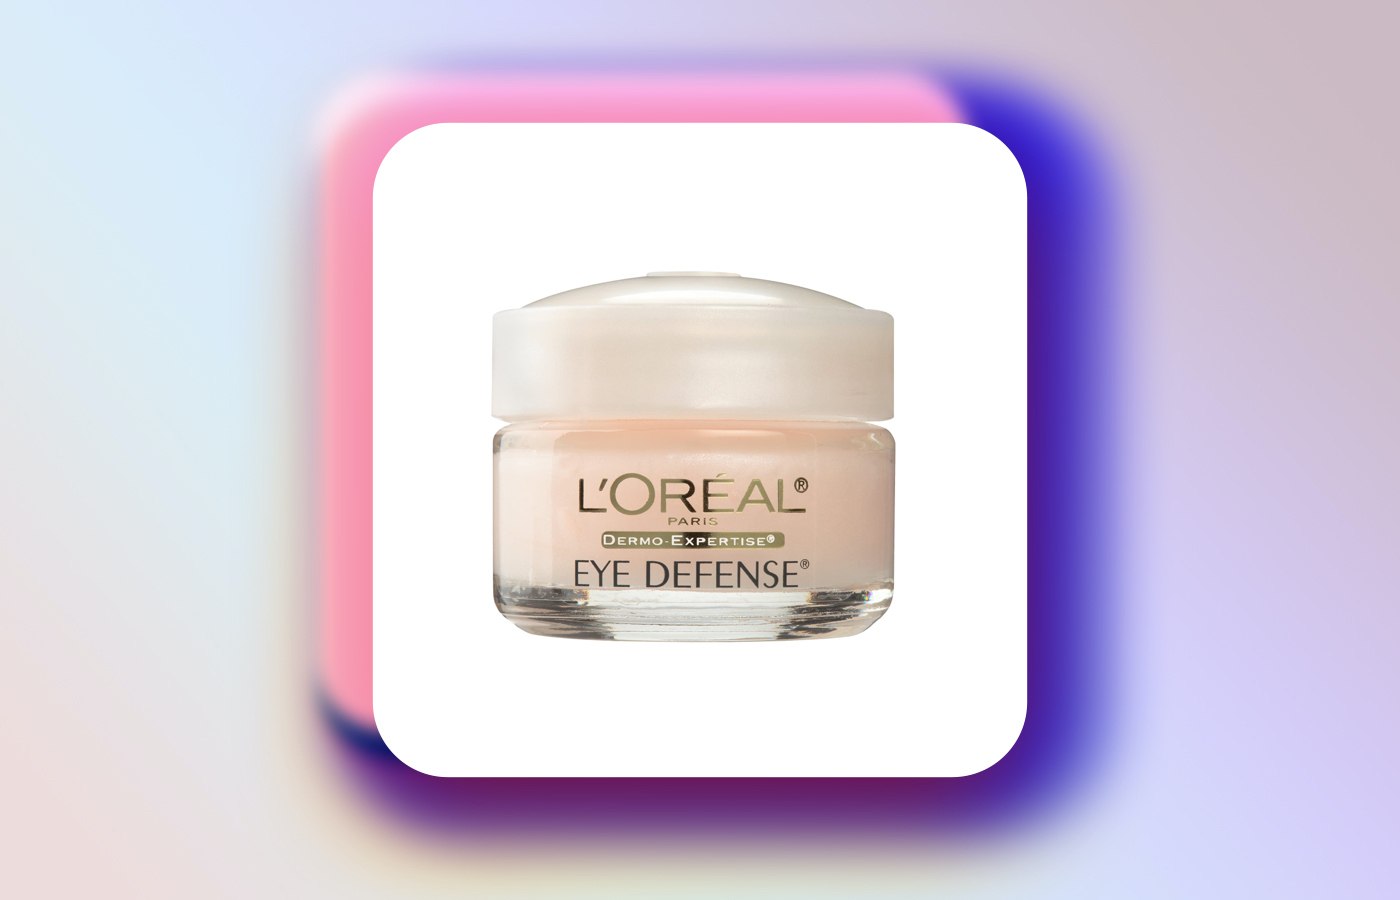 This top-rated eye cream for dark circles is now just $12 on Amazon